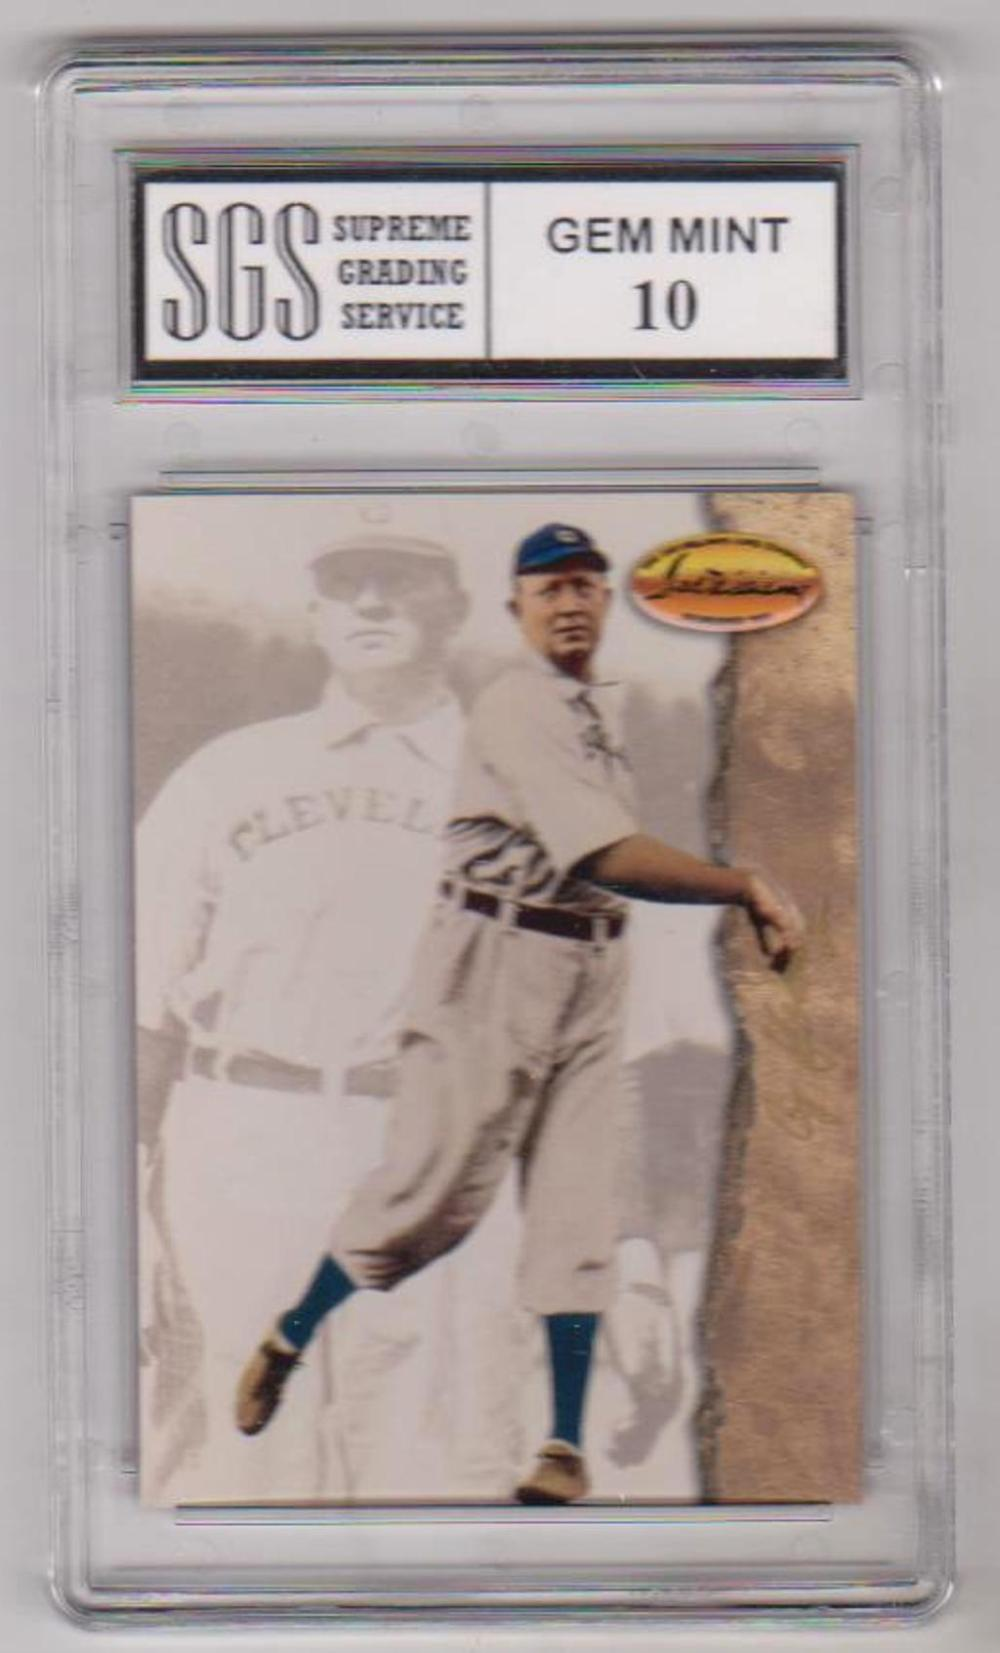 Graded Gem Mint 10 Cy Young 1994 Ted Williams Company #7 Card